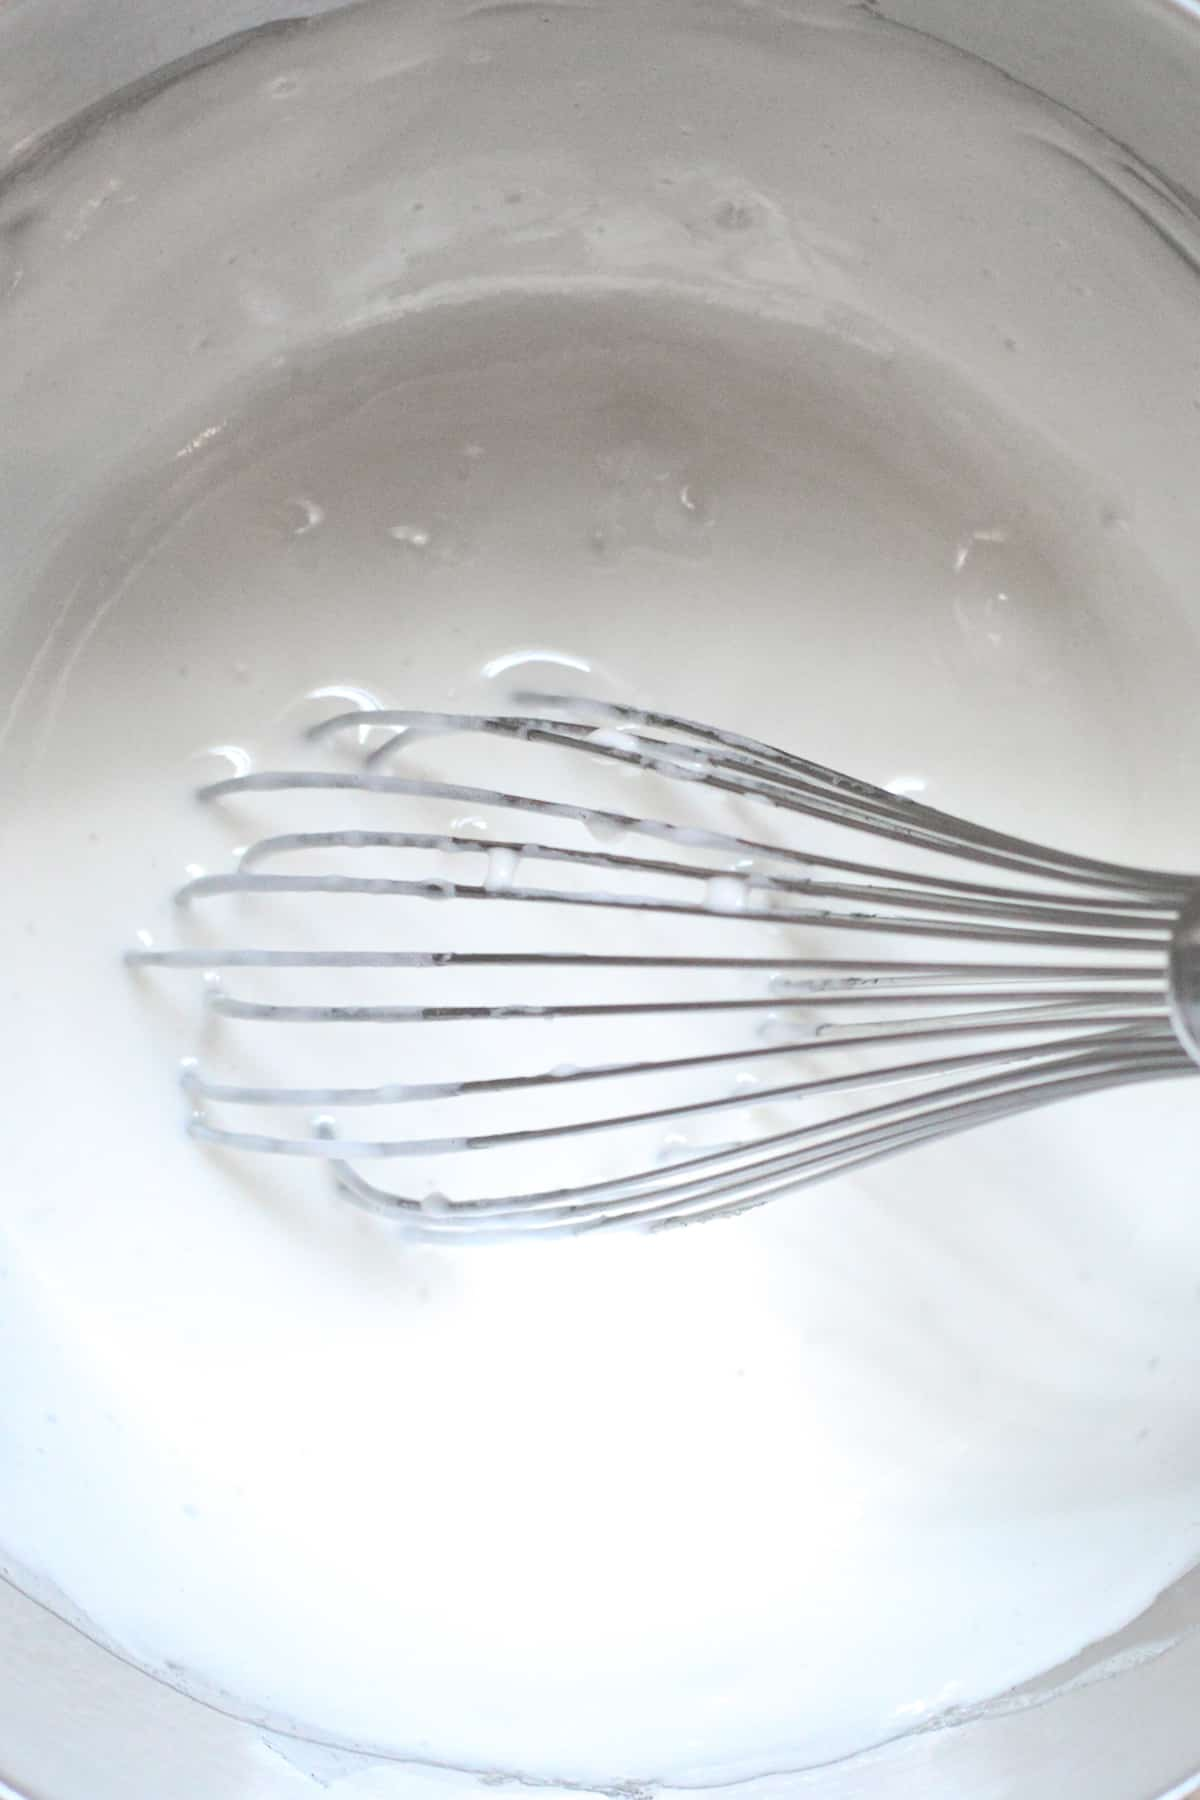 Egg whites and sugar are heated and whisked on a stove.